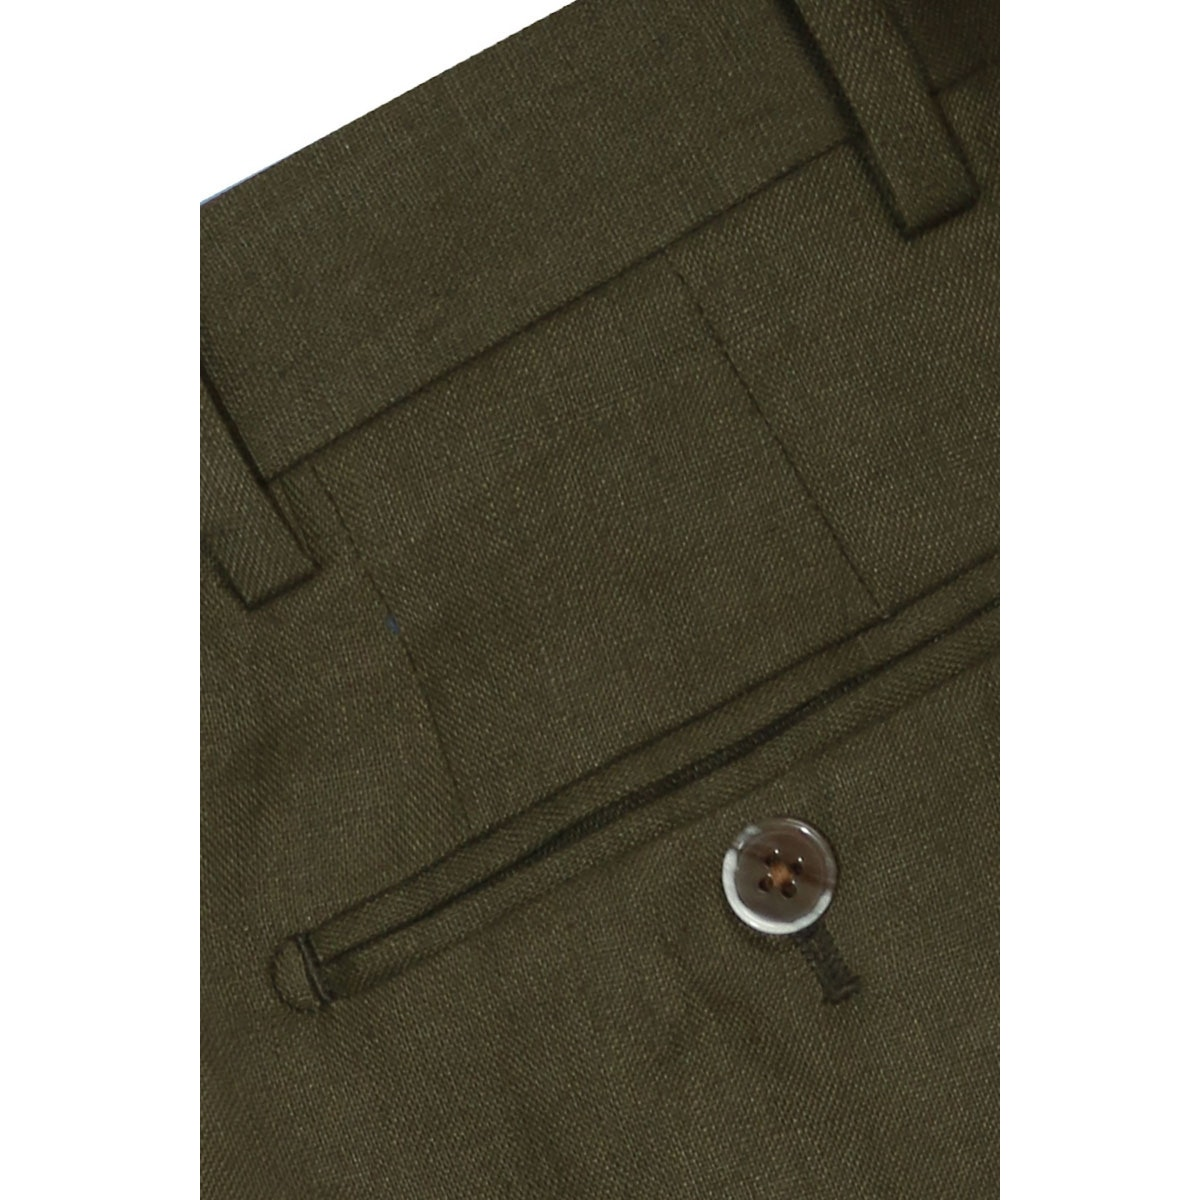 InStitchu Collection The Ricci Olive Green Linen Pants